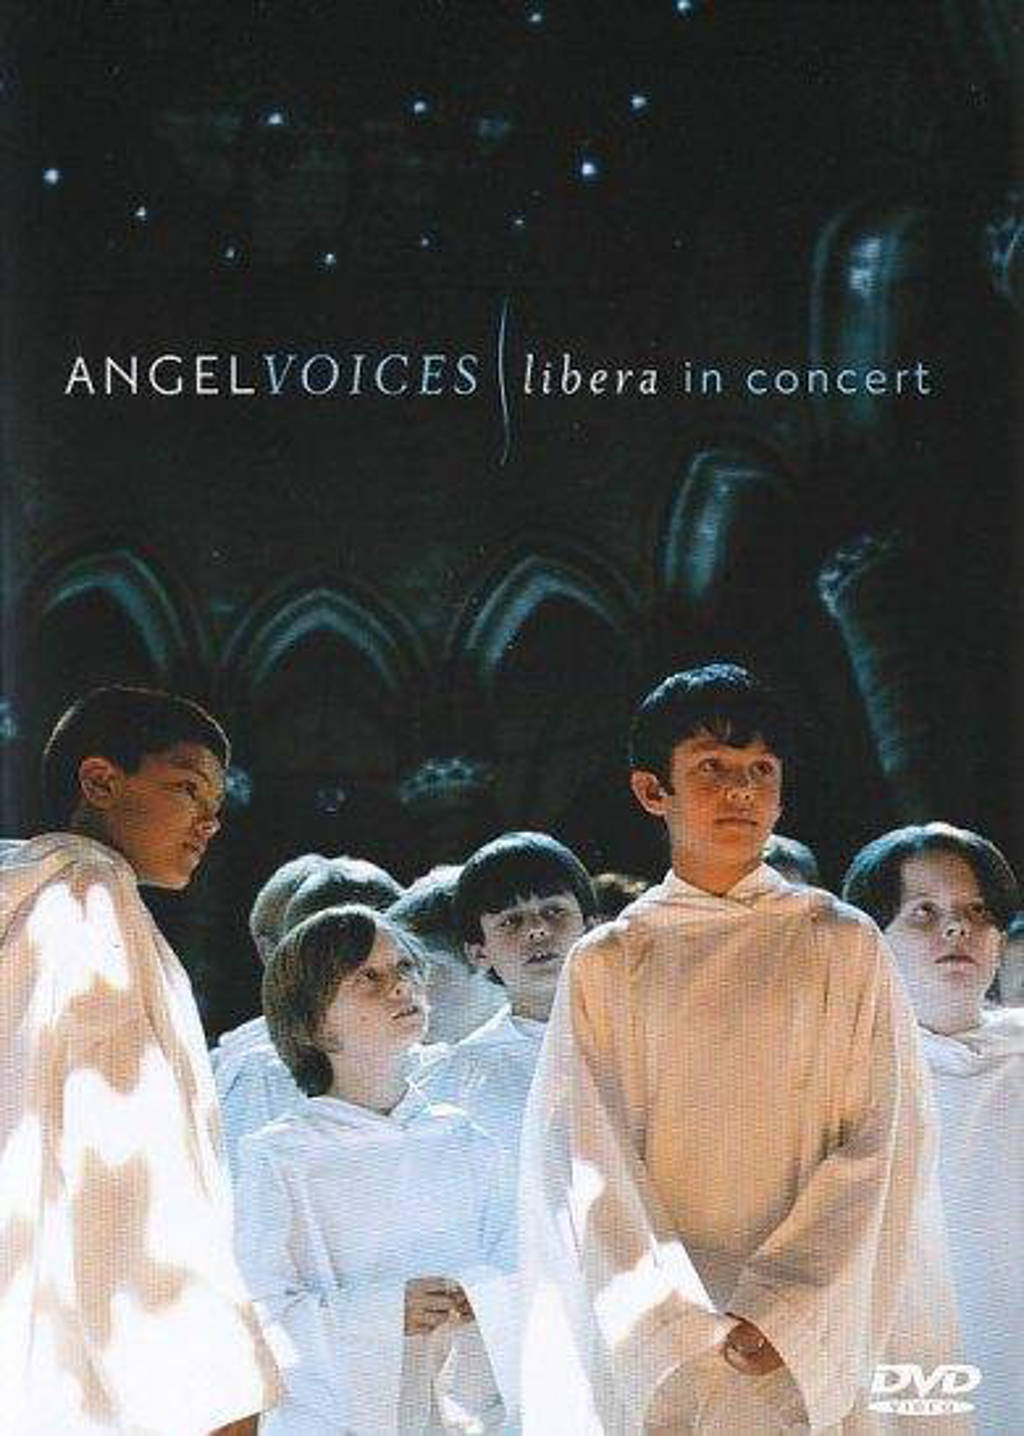 Libera - Angel Voices Libera In Concer (DVD)